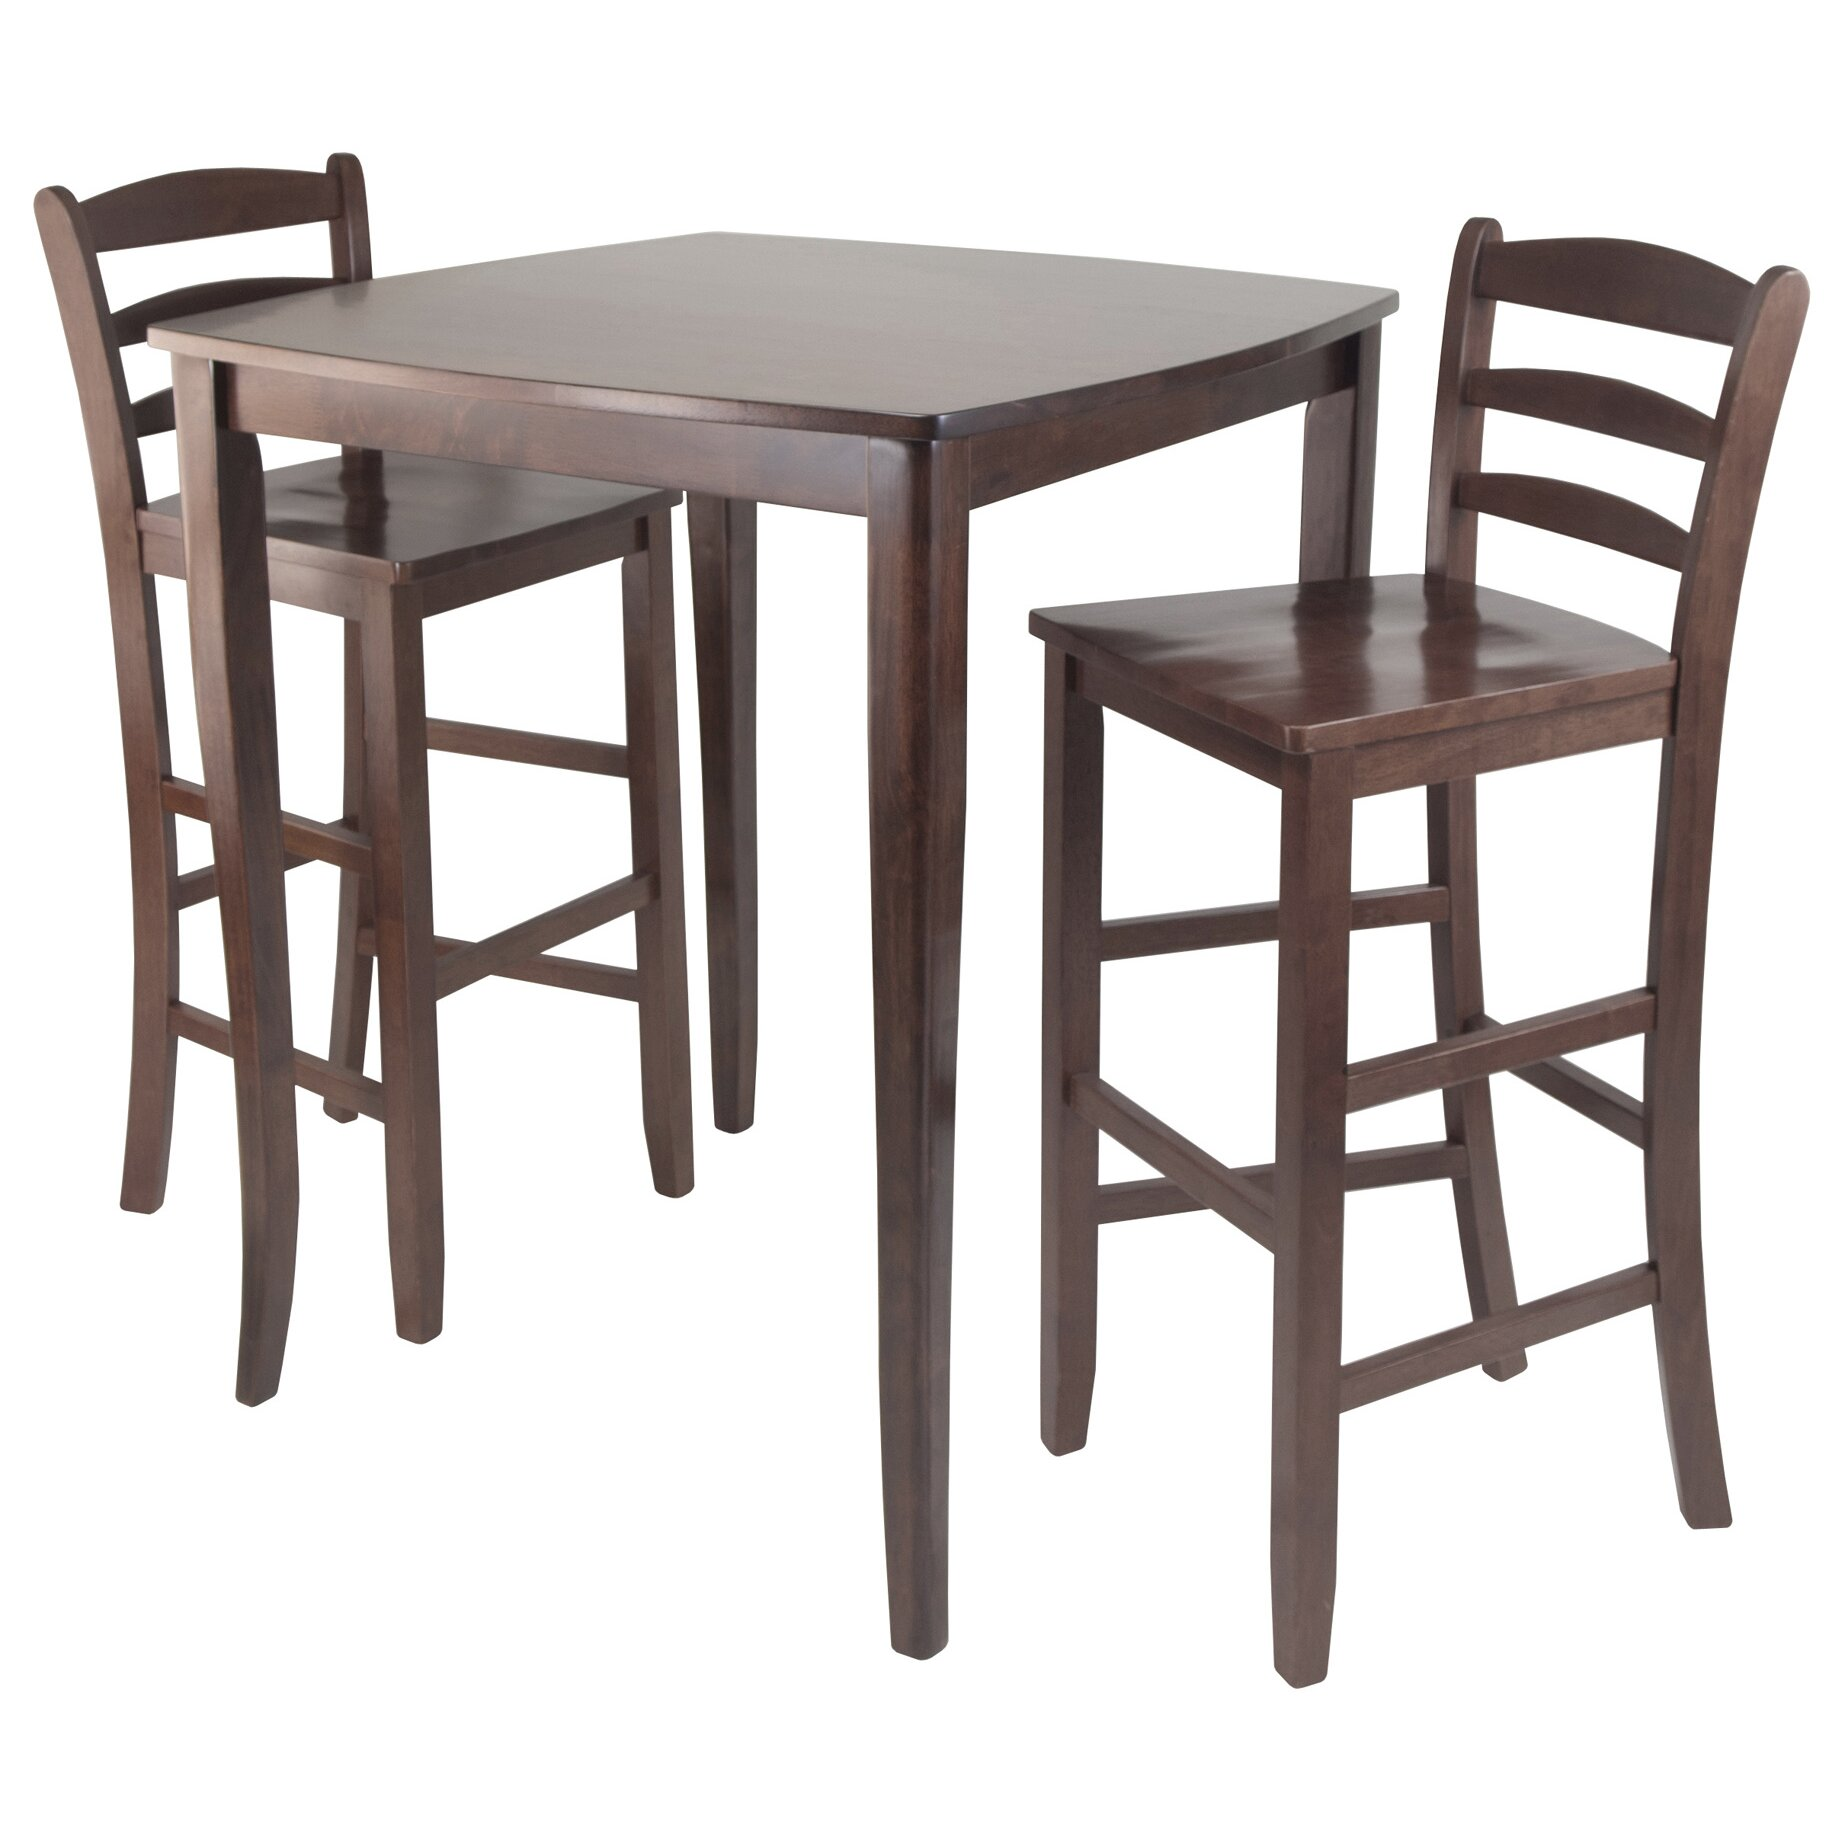 ... Inglewood 3 Piece Counter Height Pub Table Set & Reviews Wayfair